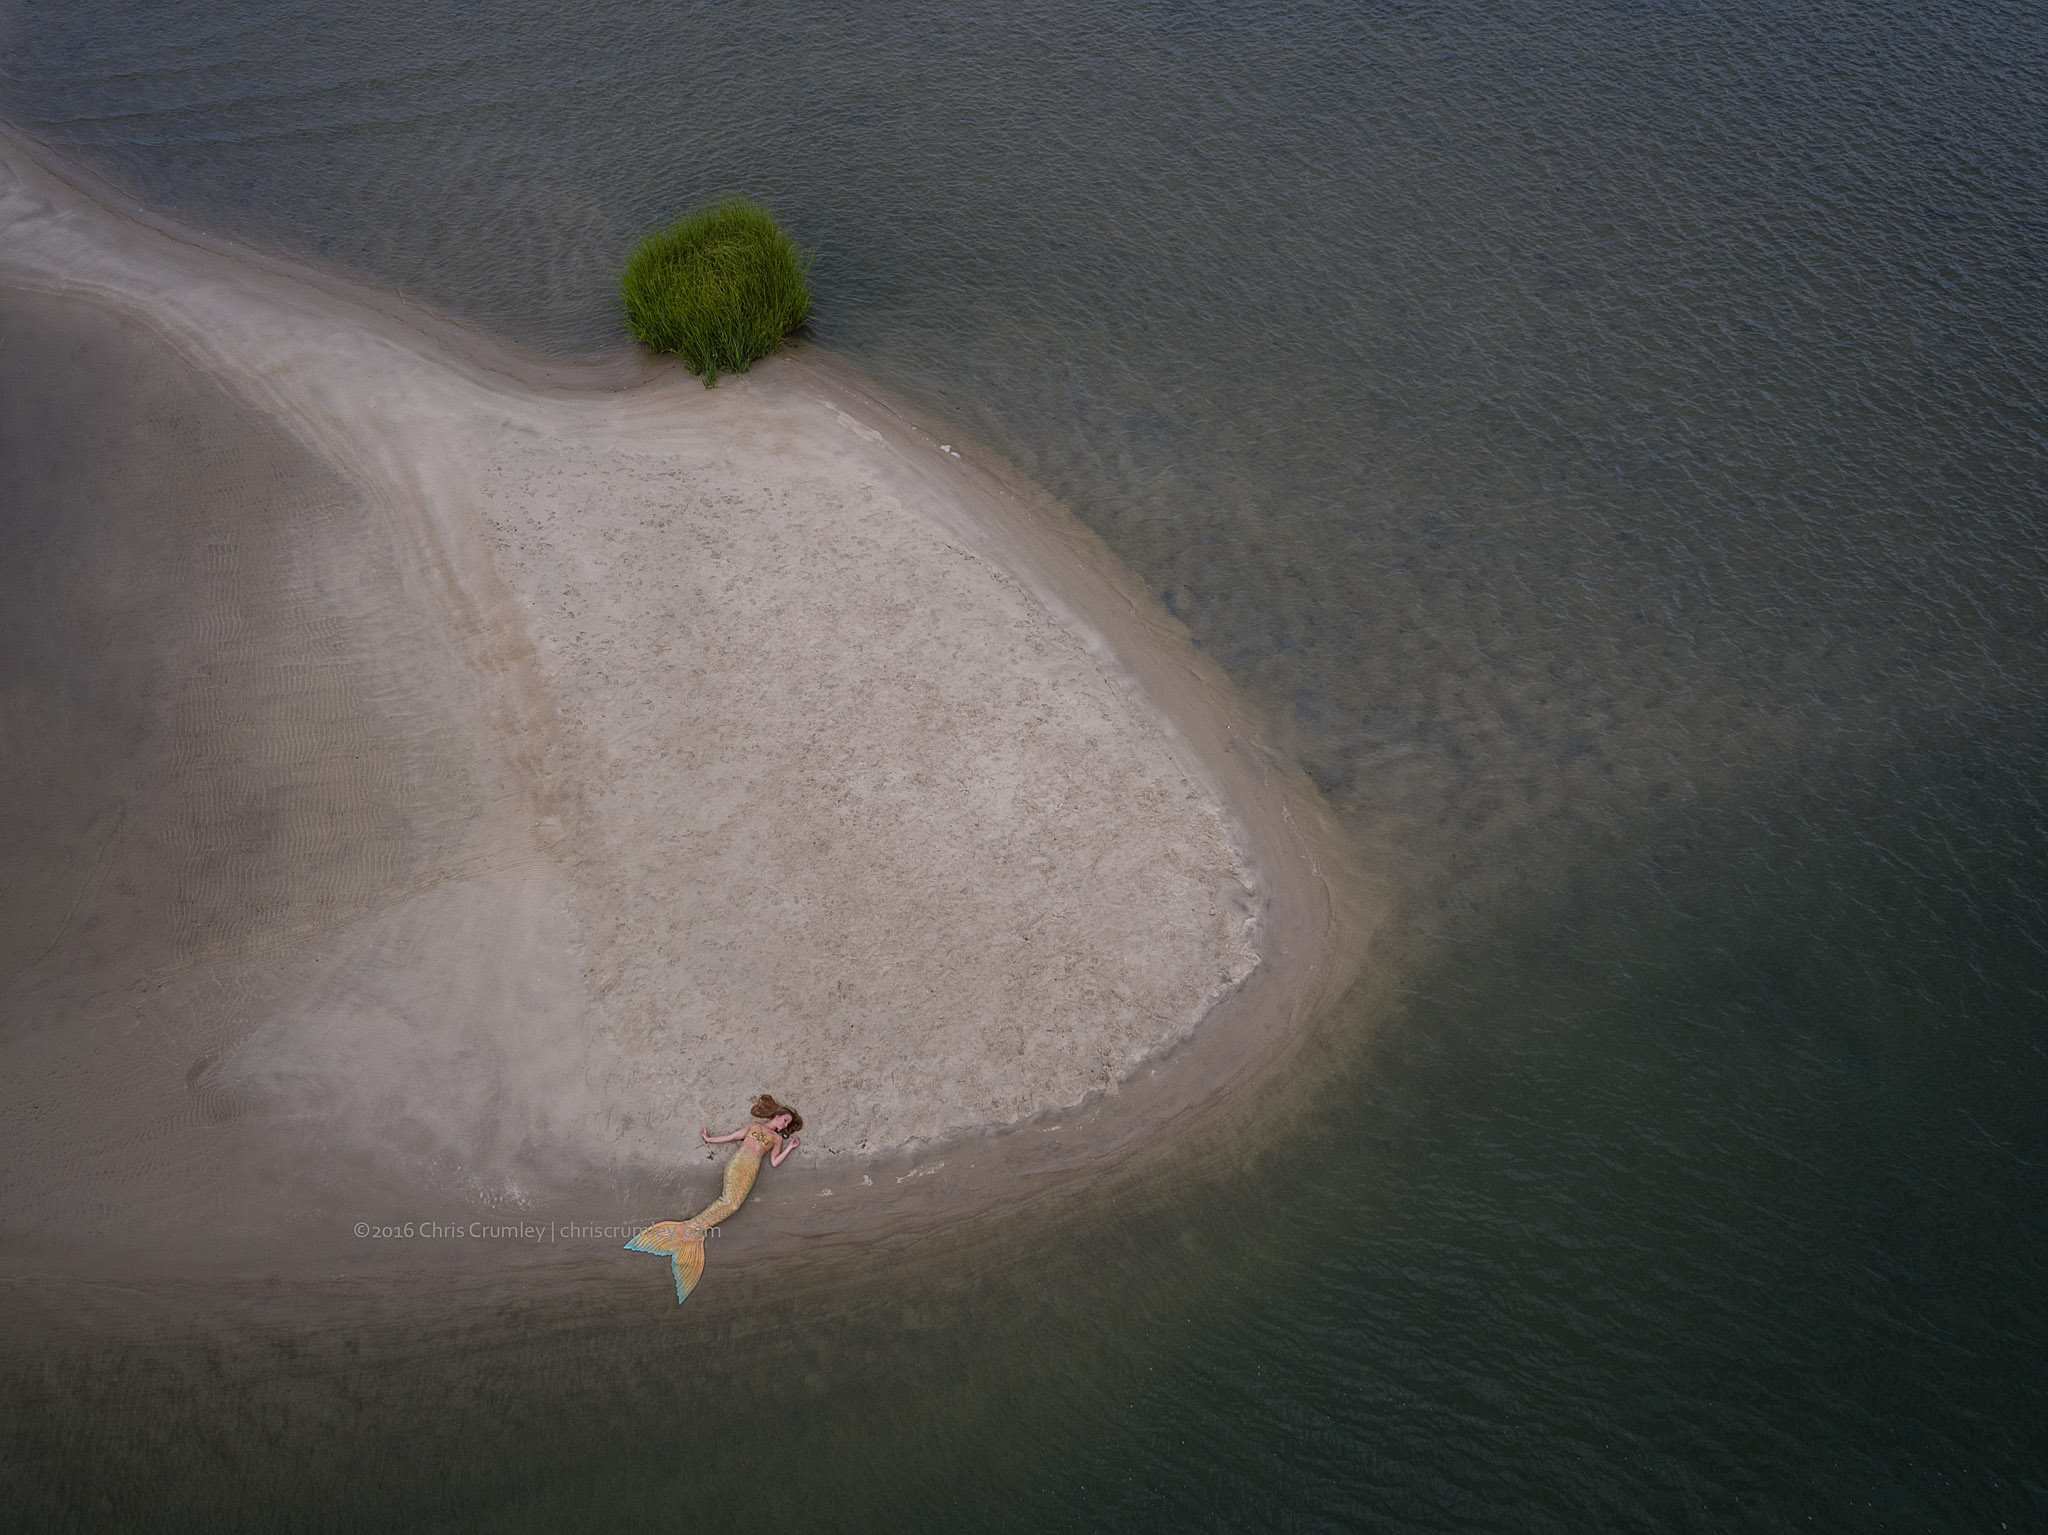 Aerial of a Mermaid, Lynnhaven Inlet, Virginia Beach